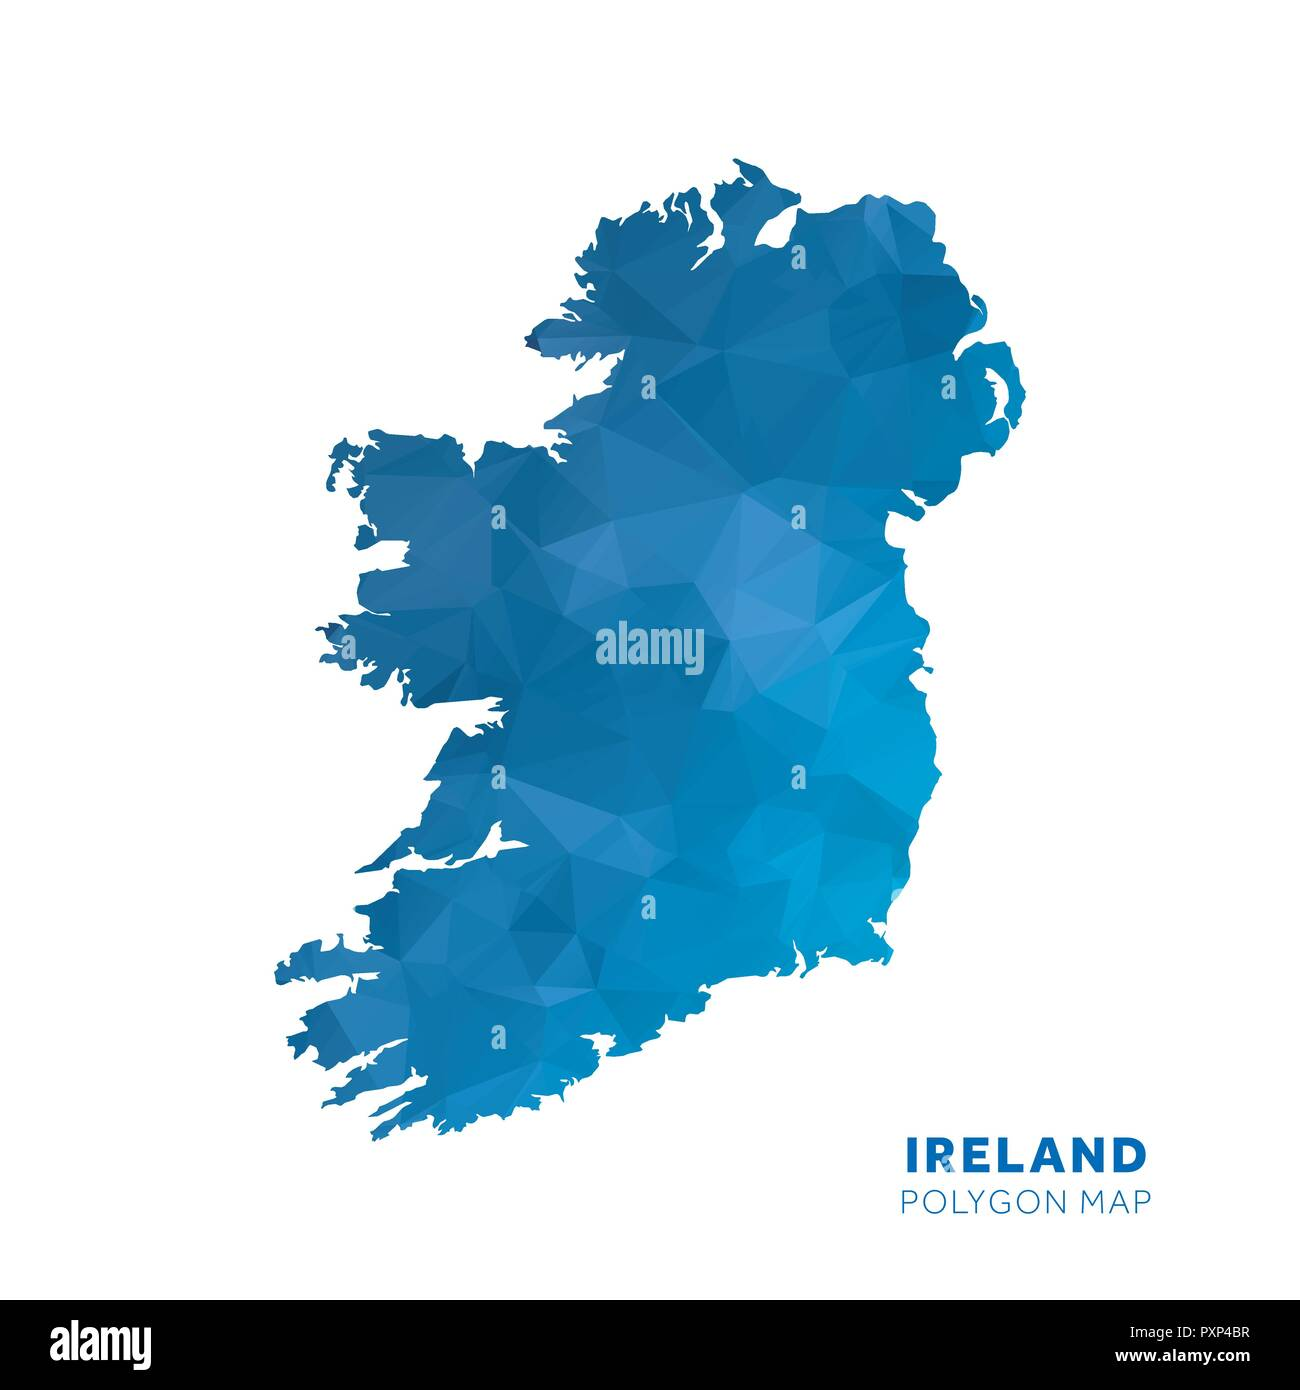 Map of Ireland. Blue geometric polygon map Stock Vector Art ... Illustration Map Of Ireland on map of netherlands, map of european countries, map of japan, map of britain, map of british isles, map of dublin, map of skellig islands, map of denmark, map of united kingdom, map of ring of kerry, map of united states, map of prince edward island, map of eastern hemisphere, map of yugoslavia, map of northeast us, map of sweden, map of scotland, map of london, map of hong kong, map of philippines,